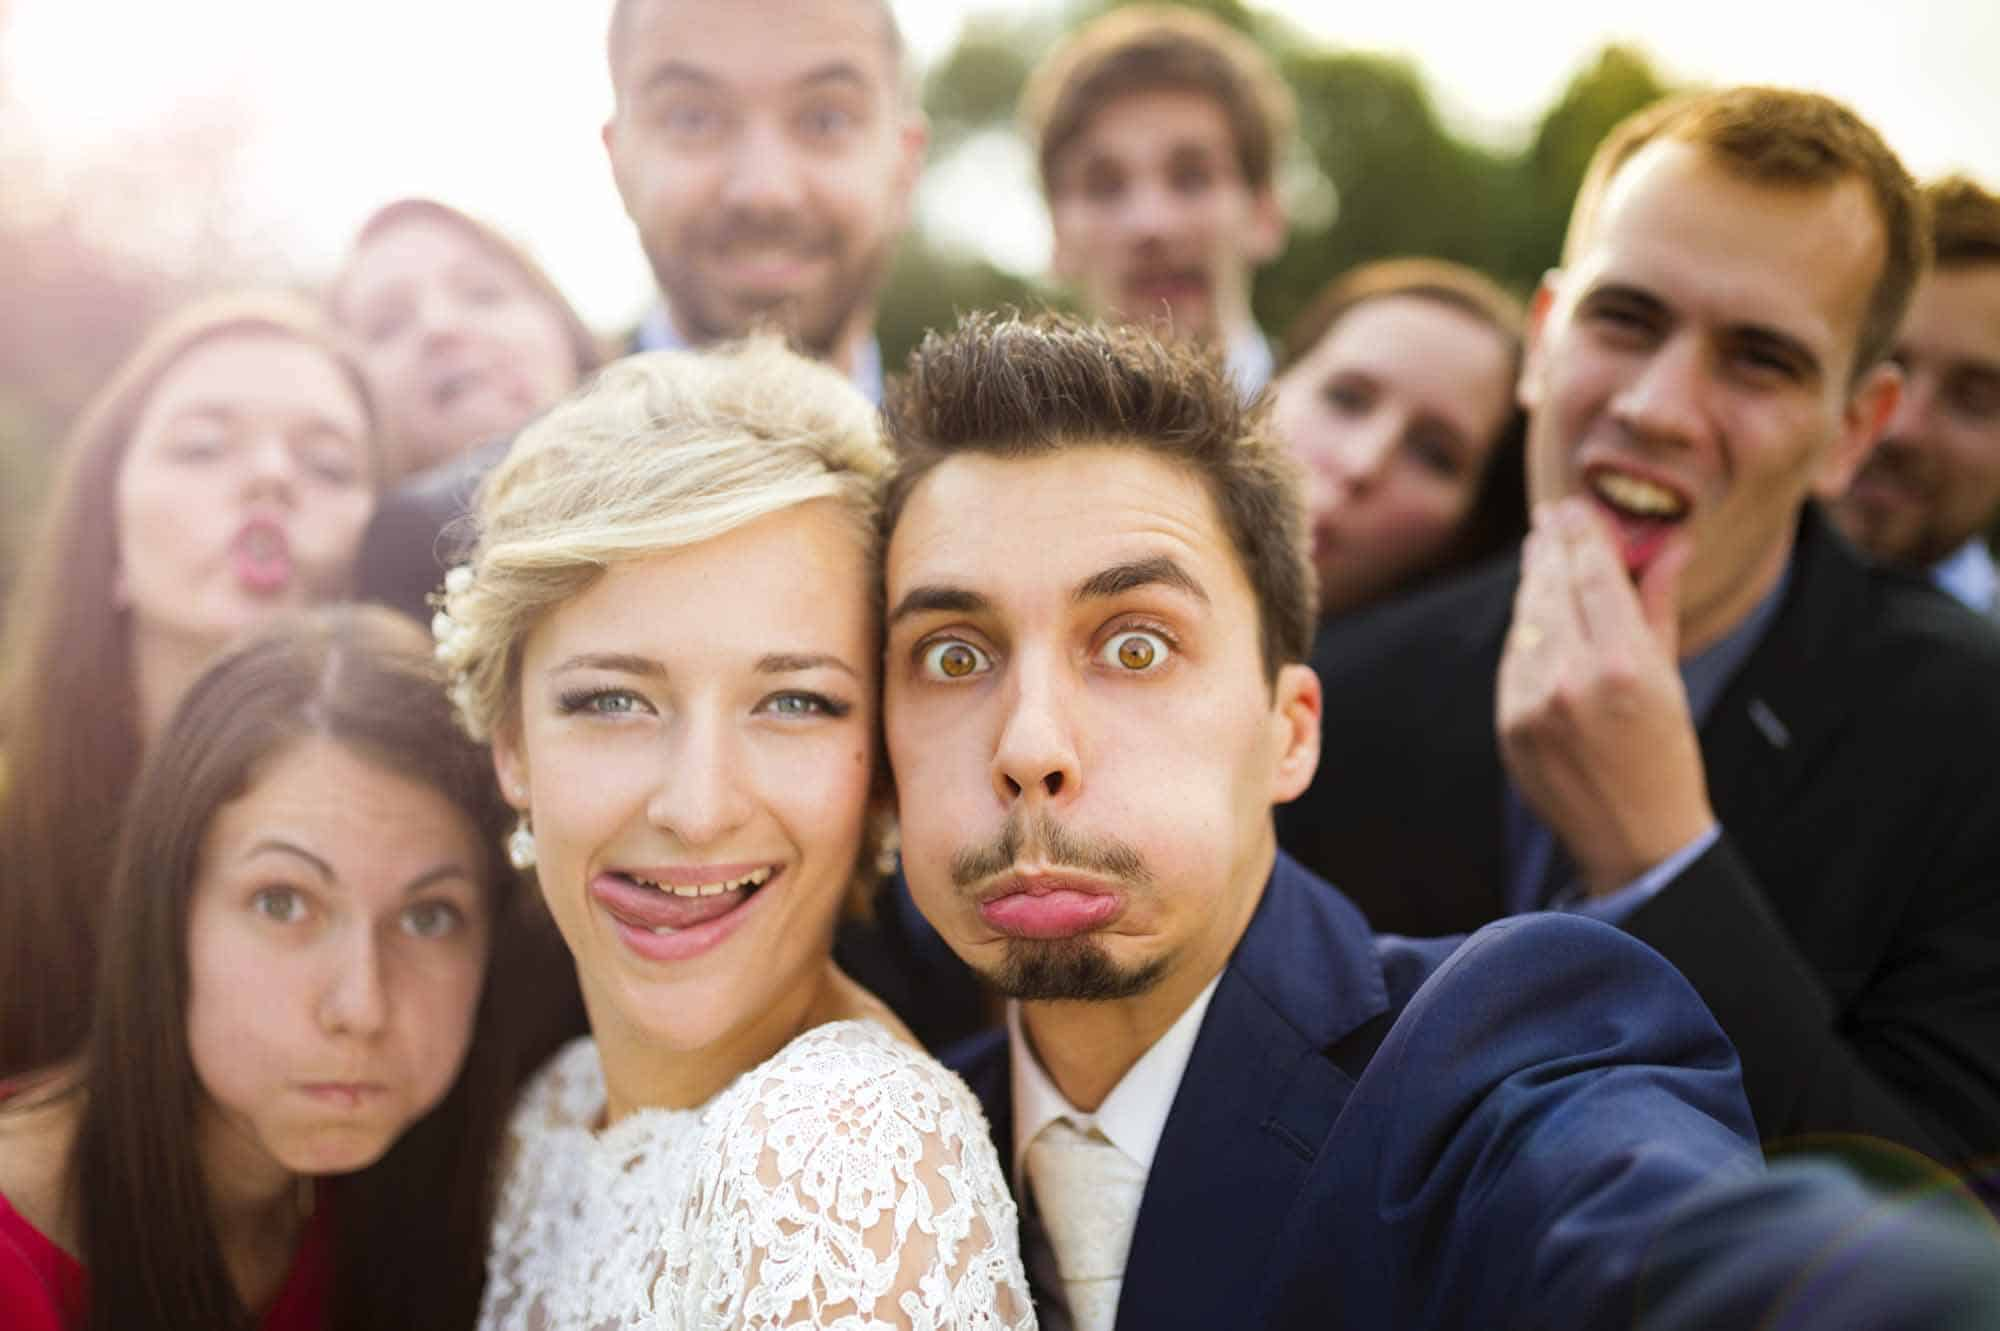 Silly-faces-from-wedding-party